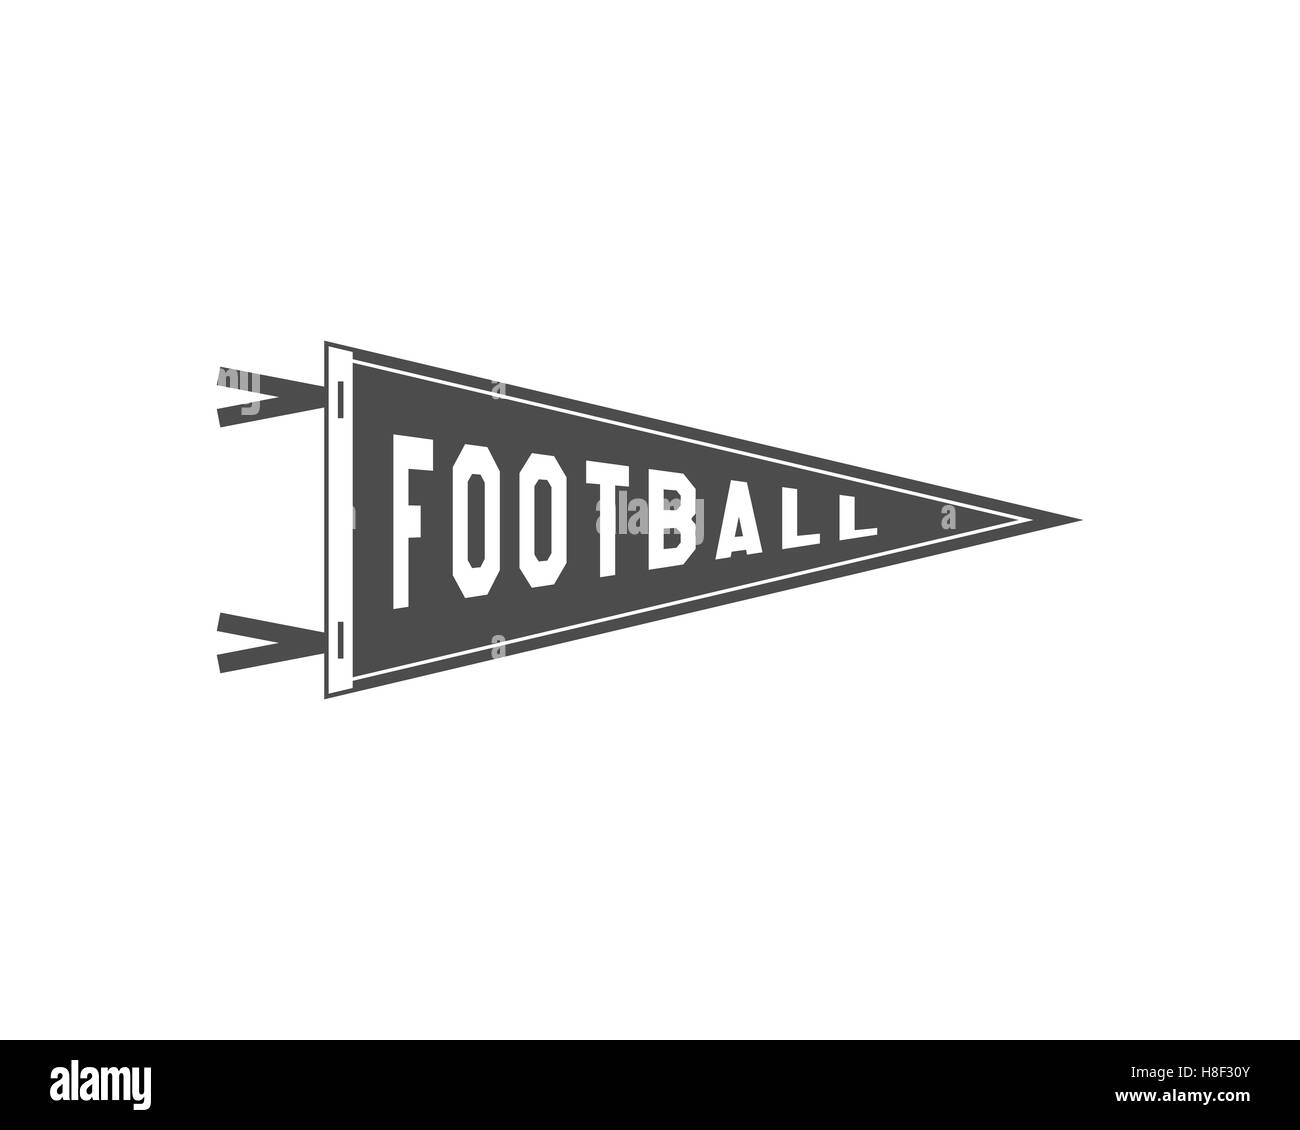 College football pennant banner icon sport flag training camp college football pennant banner icon sport flag training camp emblem university team label element monochrome design template sign pronofoot35fo Images